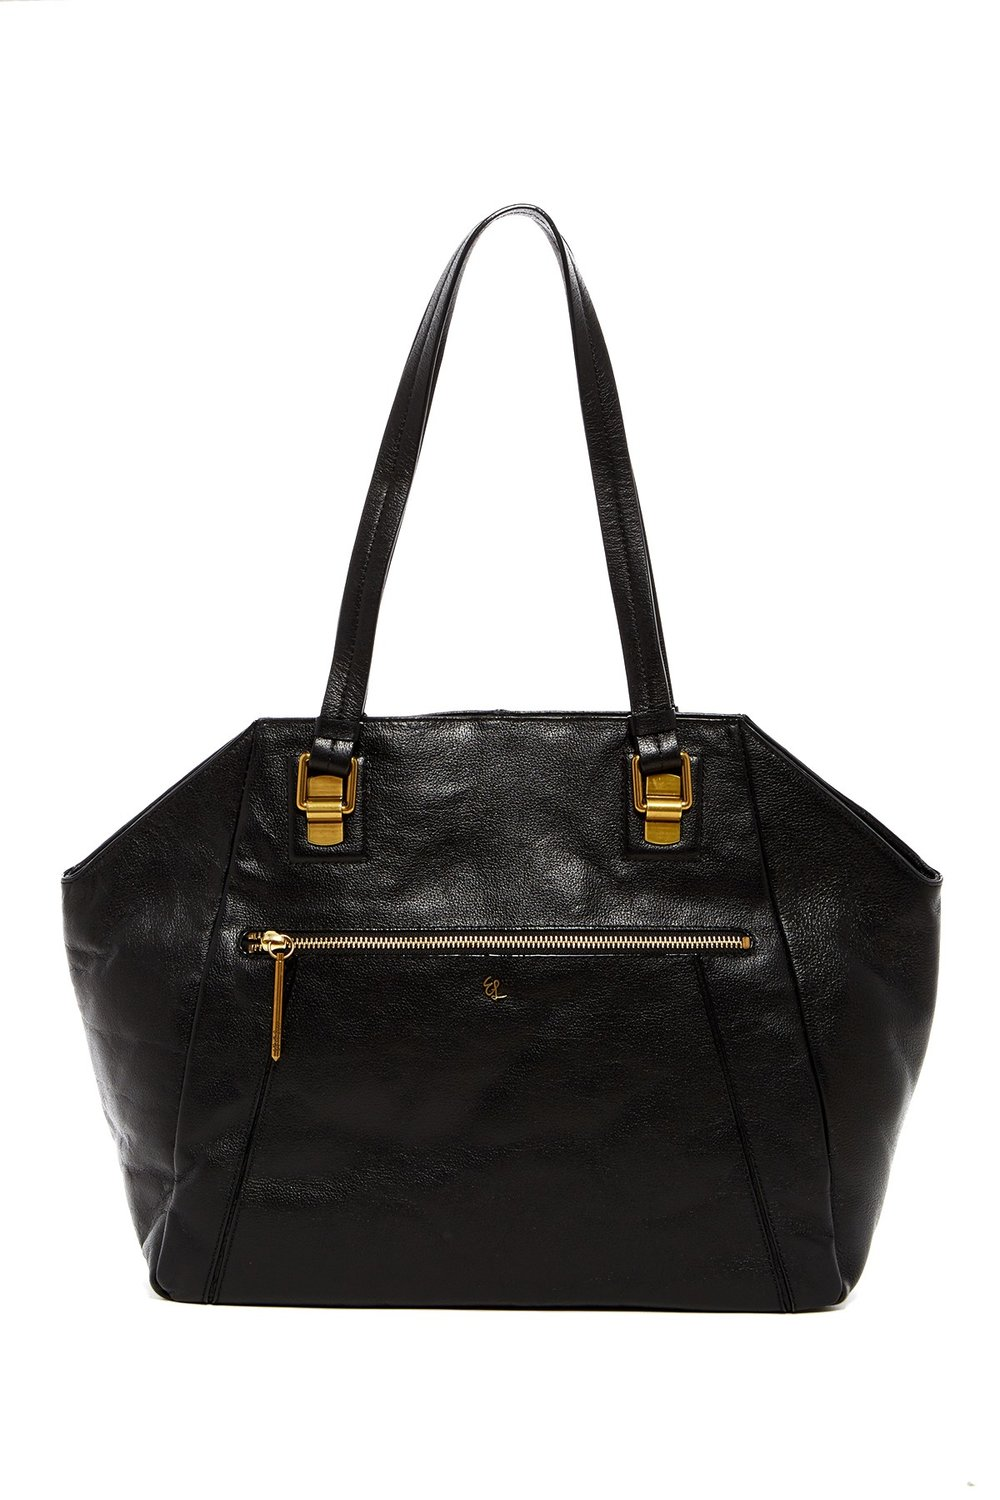 Elliott Lucca Faro Leather Shoulder Tote. Available in brown, black. Nordstrom Rack. Was: $198. Now: $99.